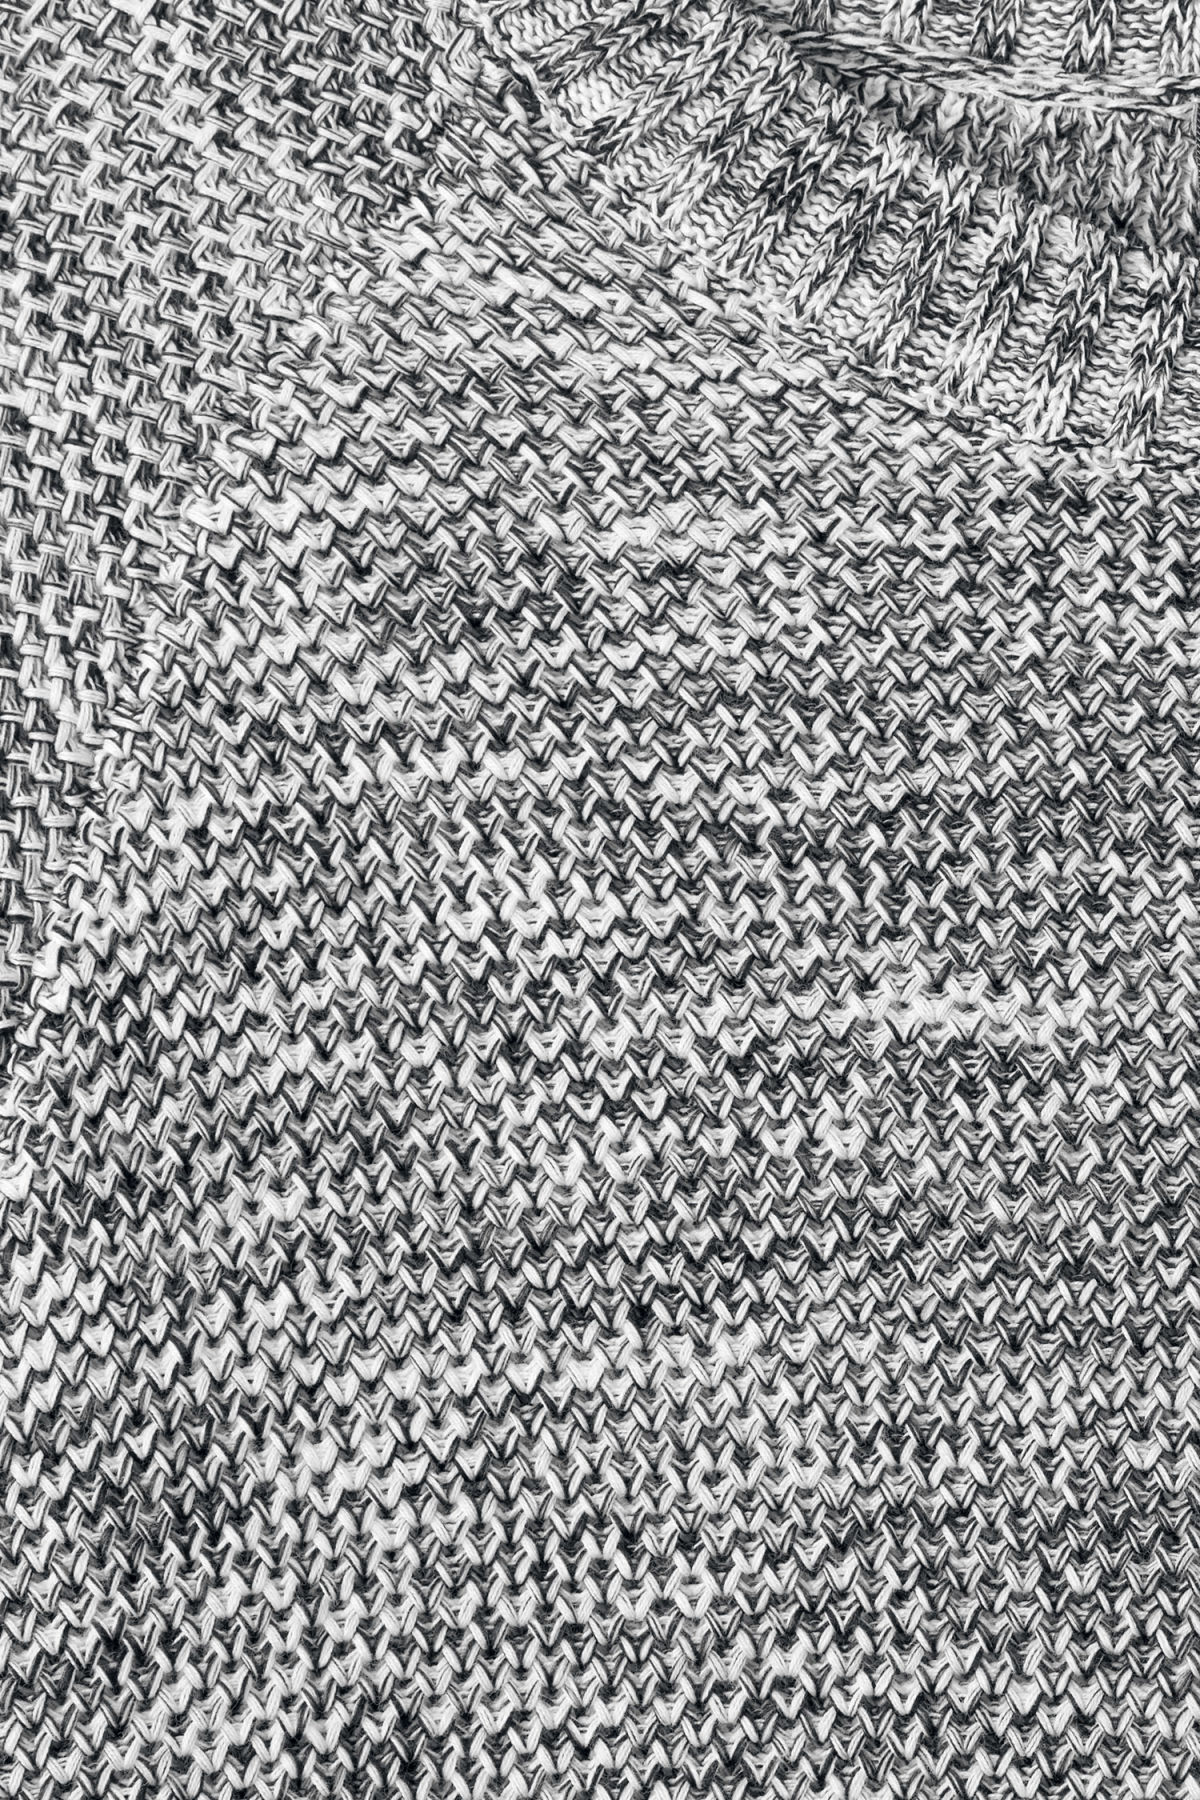 Detailed image of Weekday cave sweater in black